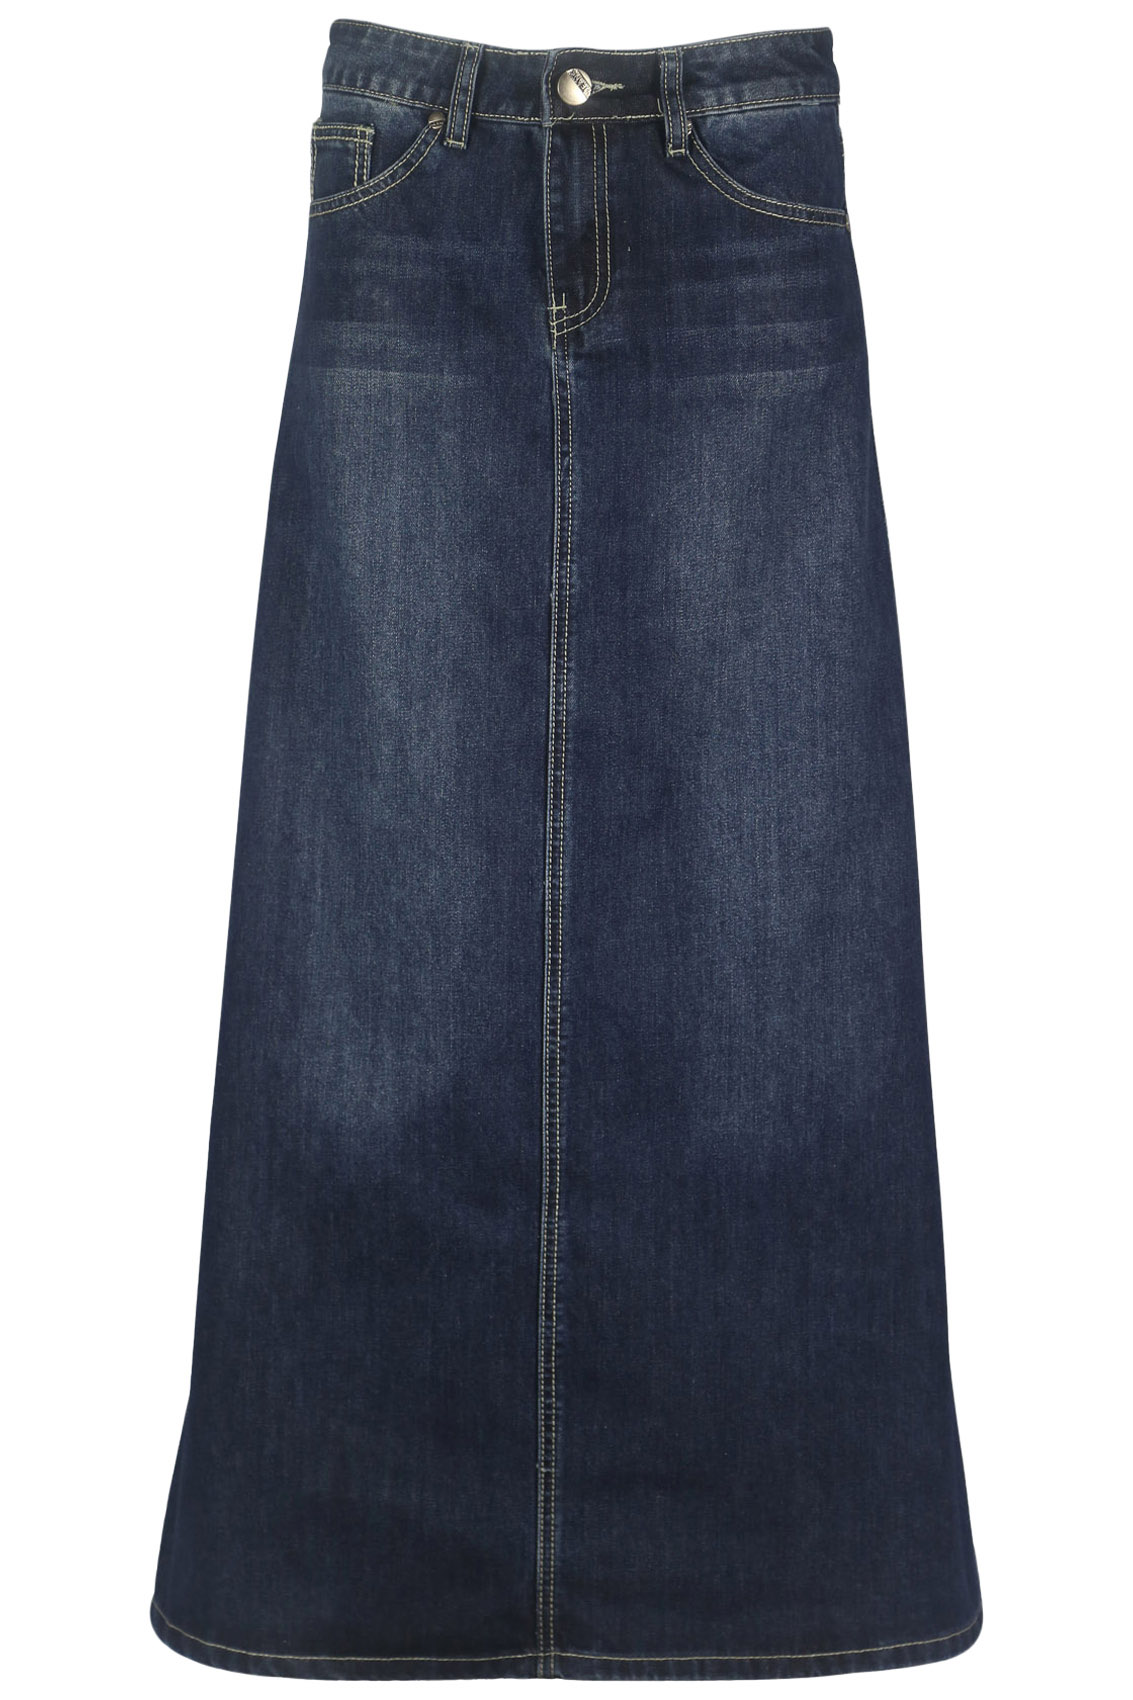 Monterey Bay Western Denim Long Skirt | eBay |Western Long Denim Skirts Modest